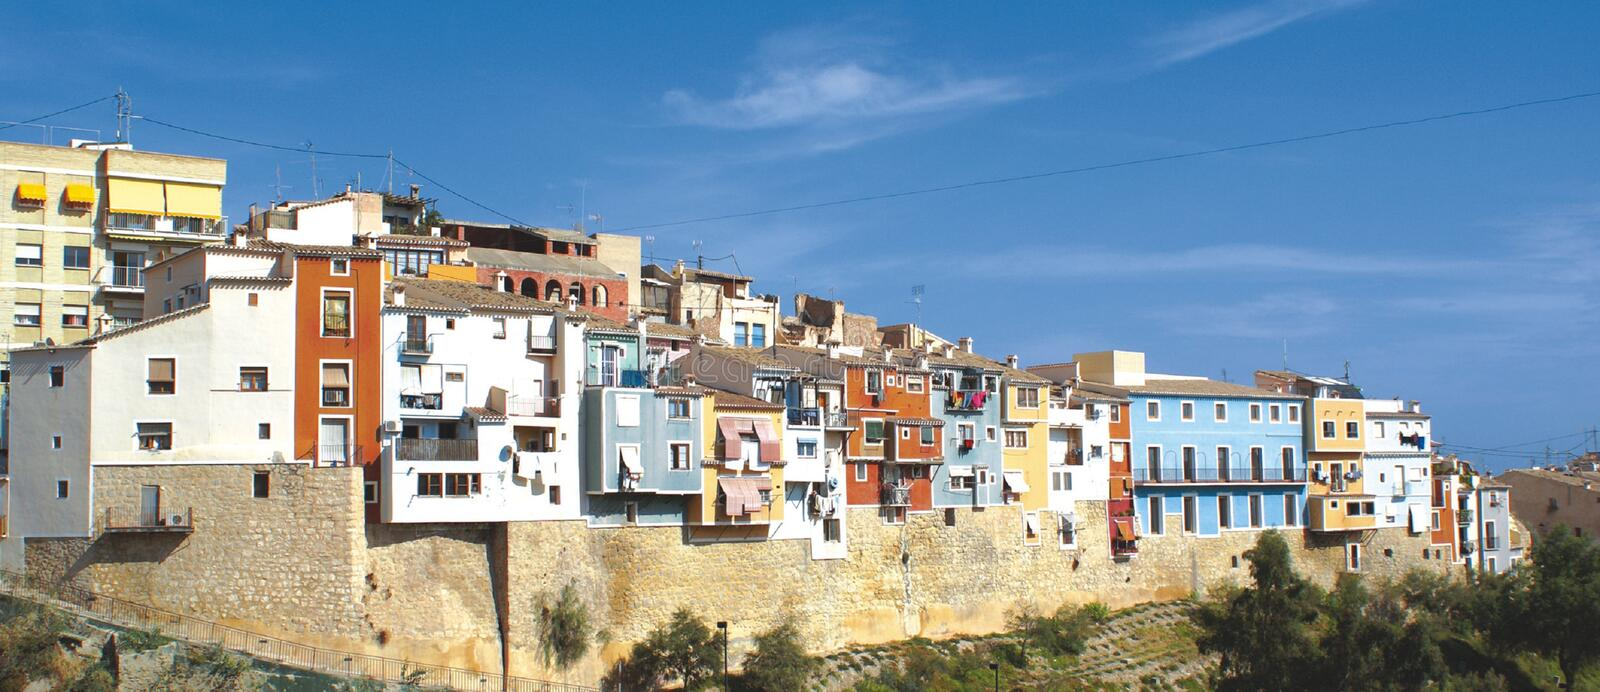 Download Villajoyosa Fishing Town stock image. Image of destinations - 28467237